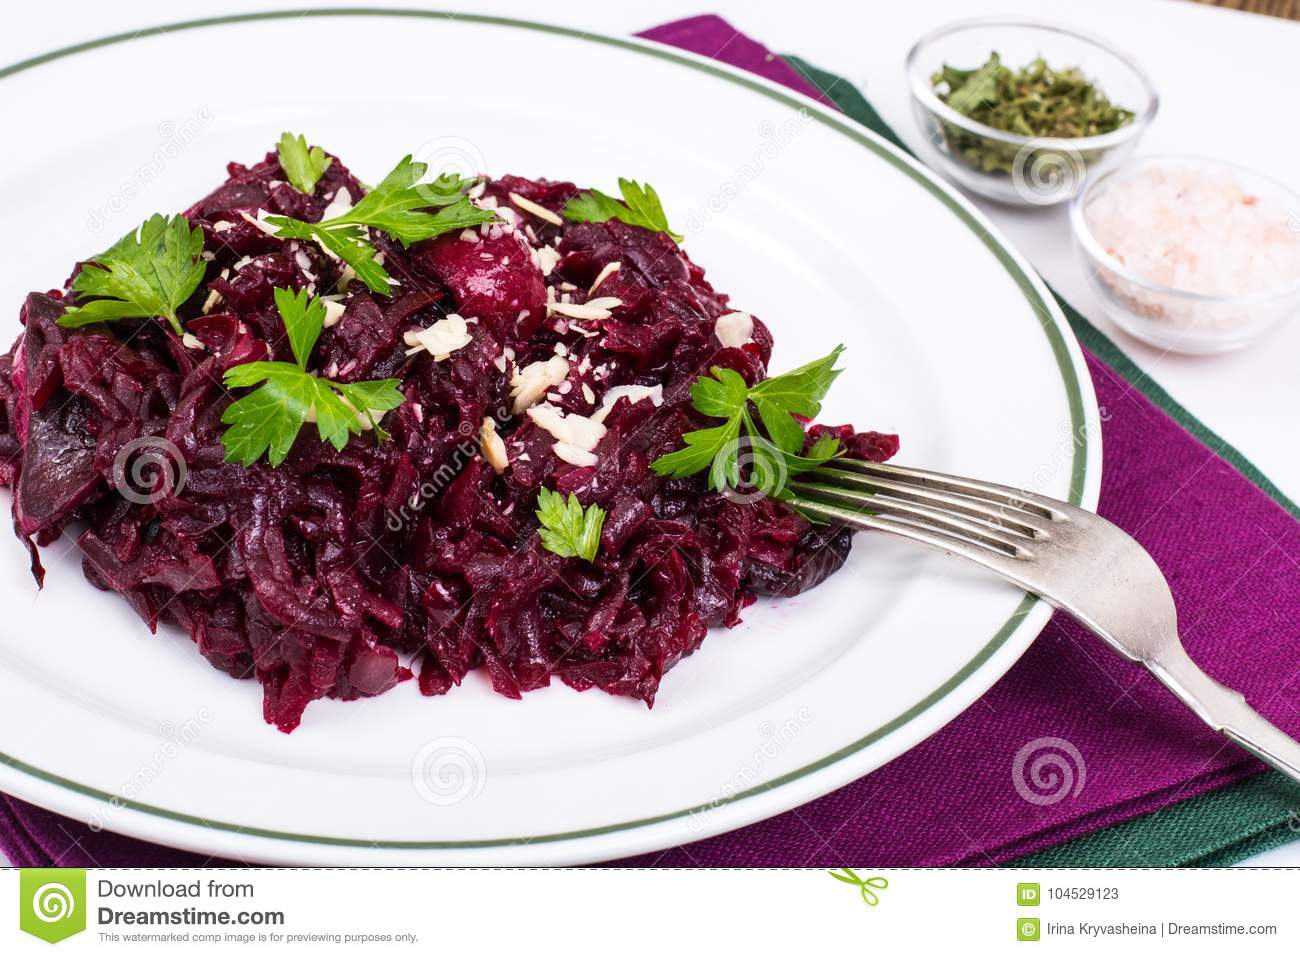 Healthy diet. Salad with beets